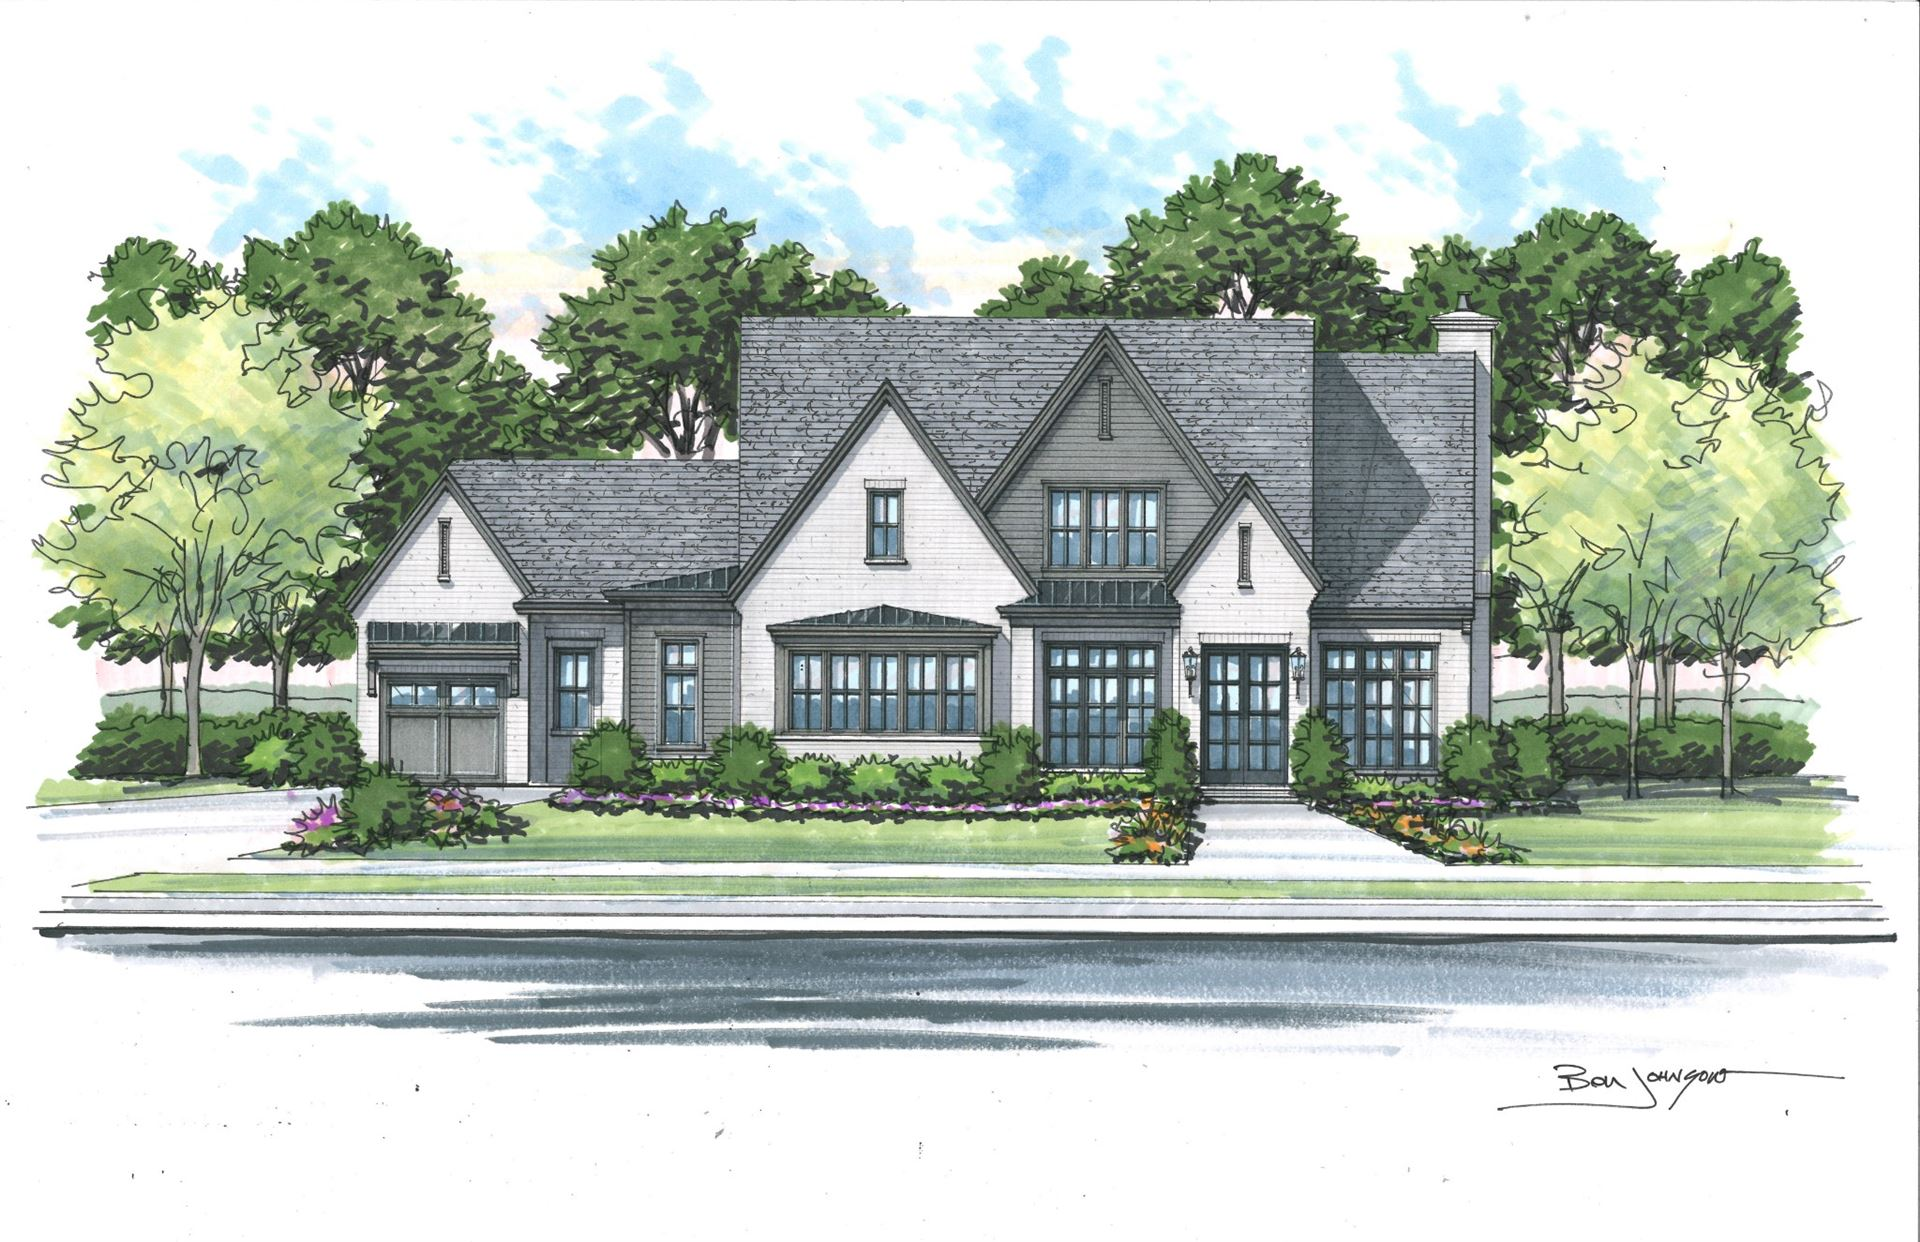 Photo of 9213 Lehigh Dr (Lot #92), Brentwood, TN 37027 (MLS # 2226785)